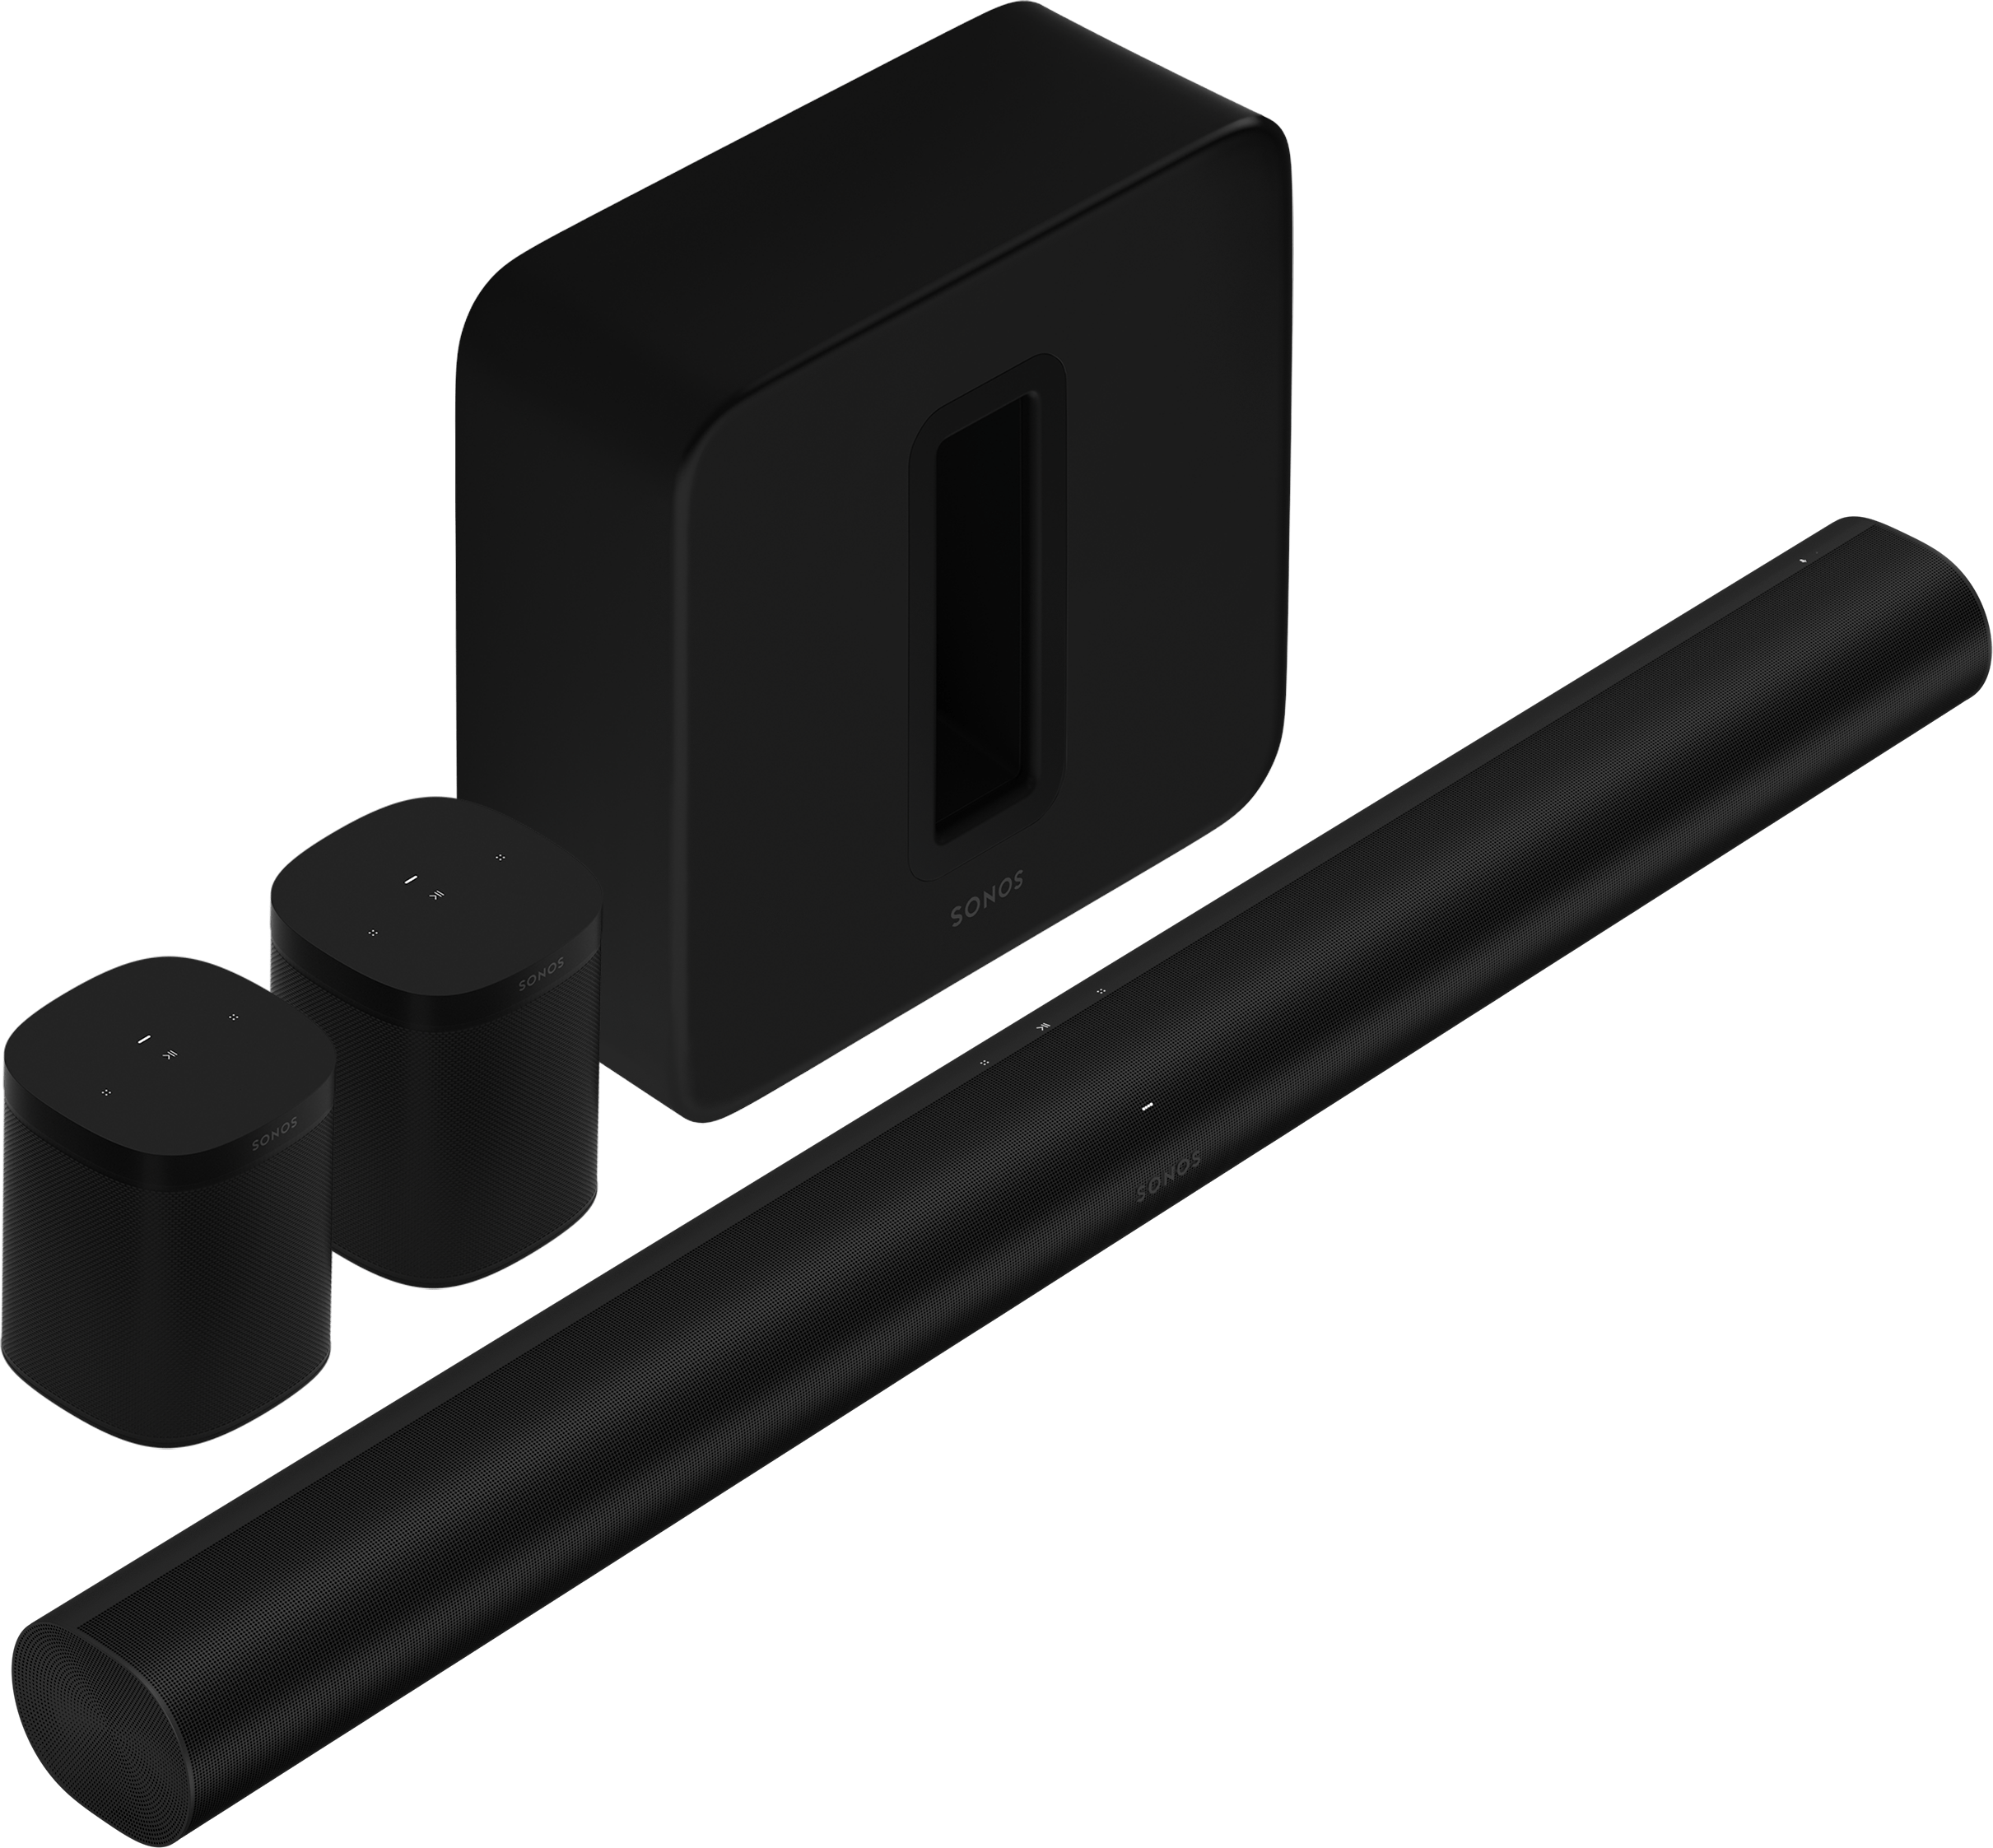 5.1.2 Surround Set with Sonos Arc, Sub, & One SL - Black